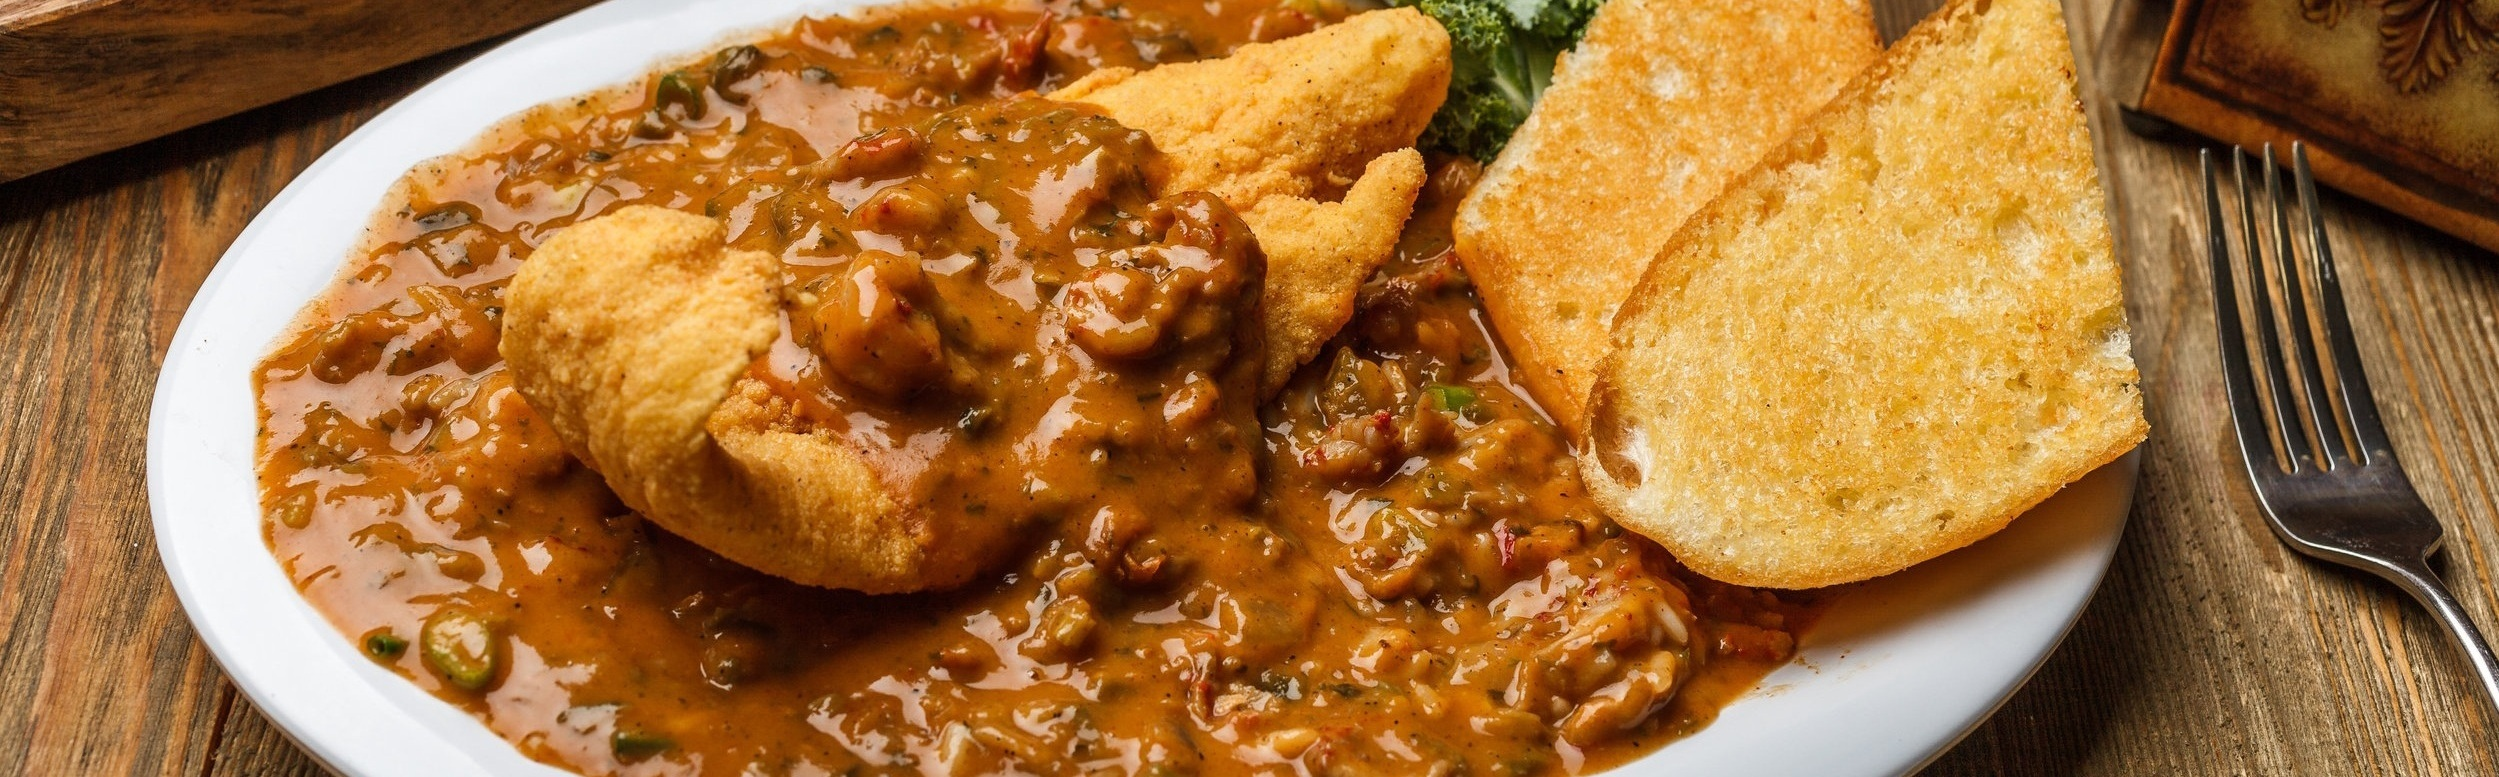 Crawfish Etouffee -